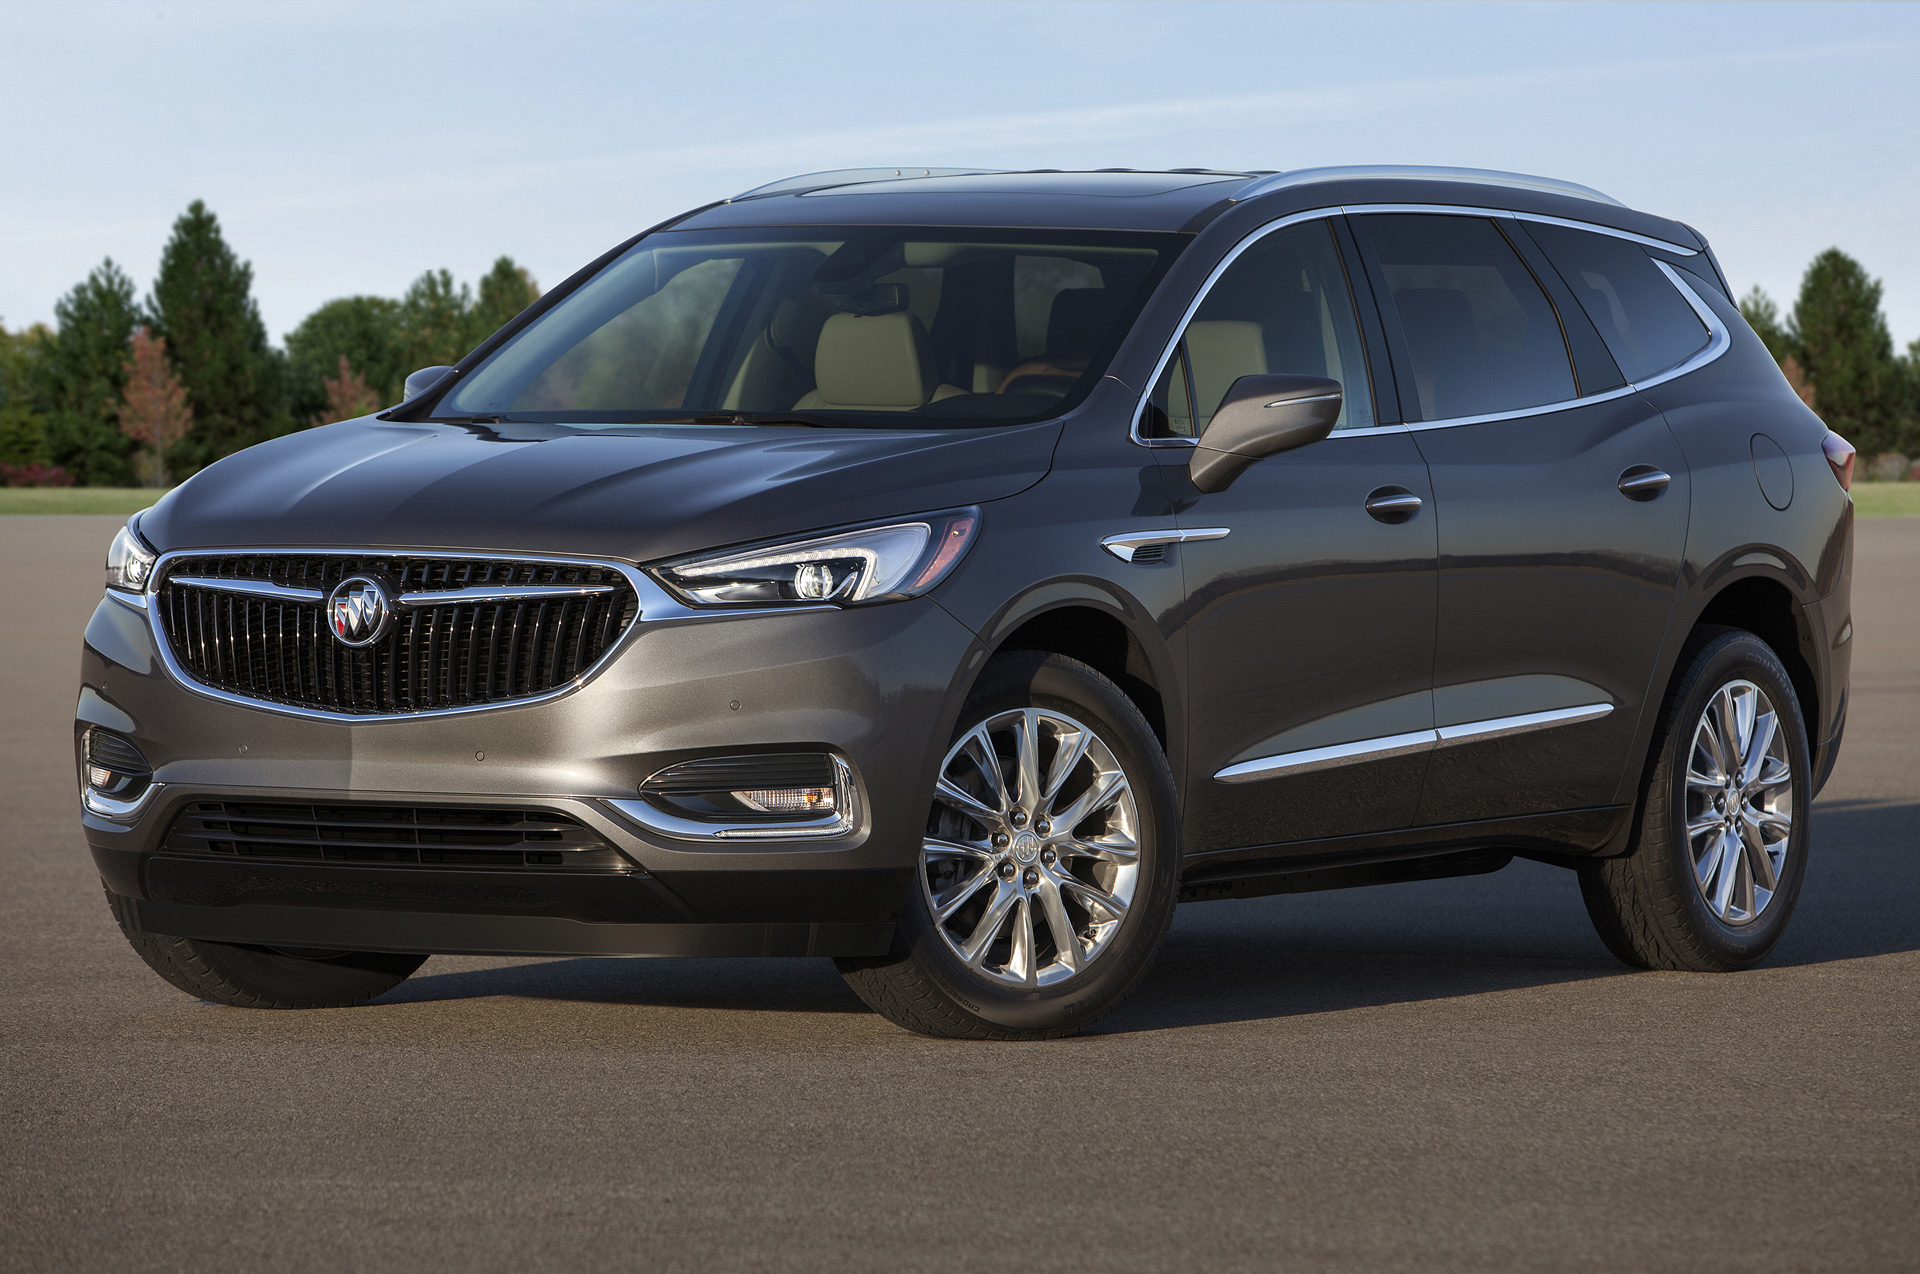 2018 Buick Enclave Video Preview Can A 2022 Buick Enclave Be Flat Towed